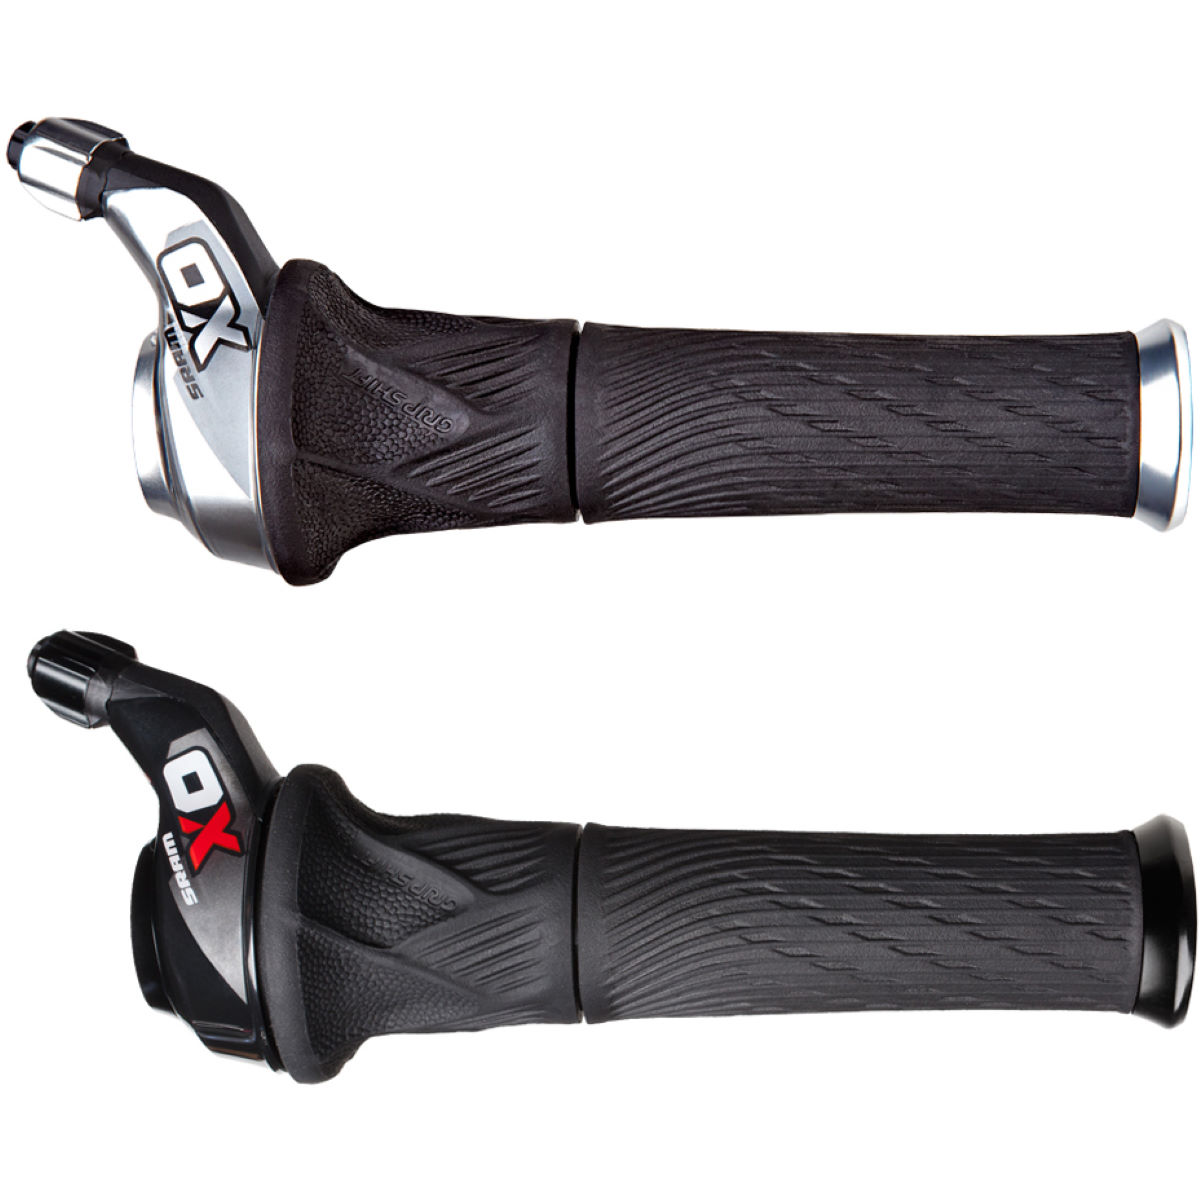 SRAM X0 Grip Shift Set (2x10) with Lock-On Grips